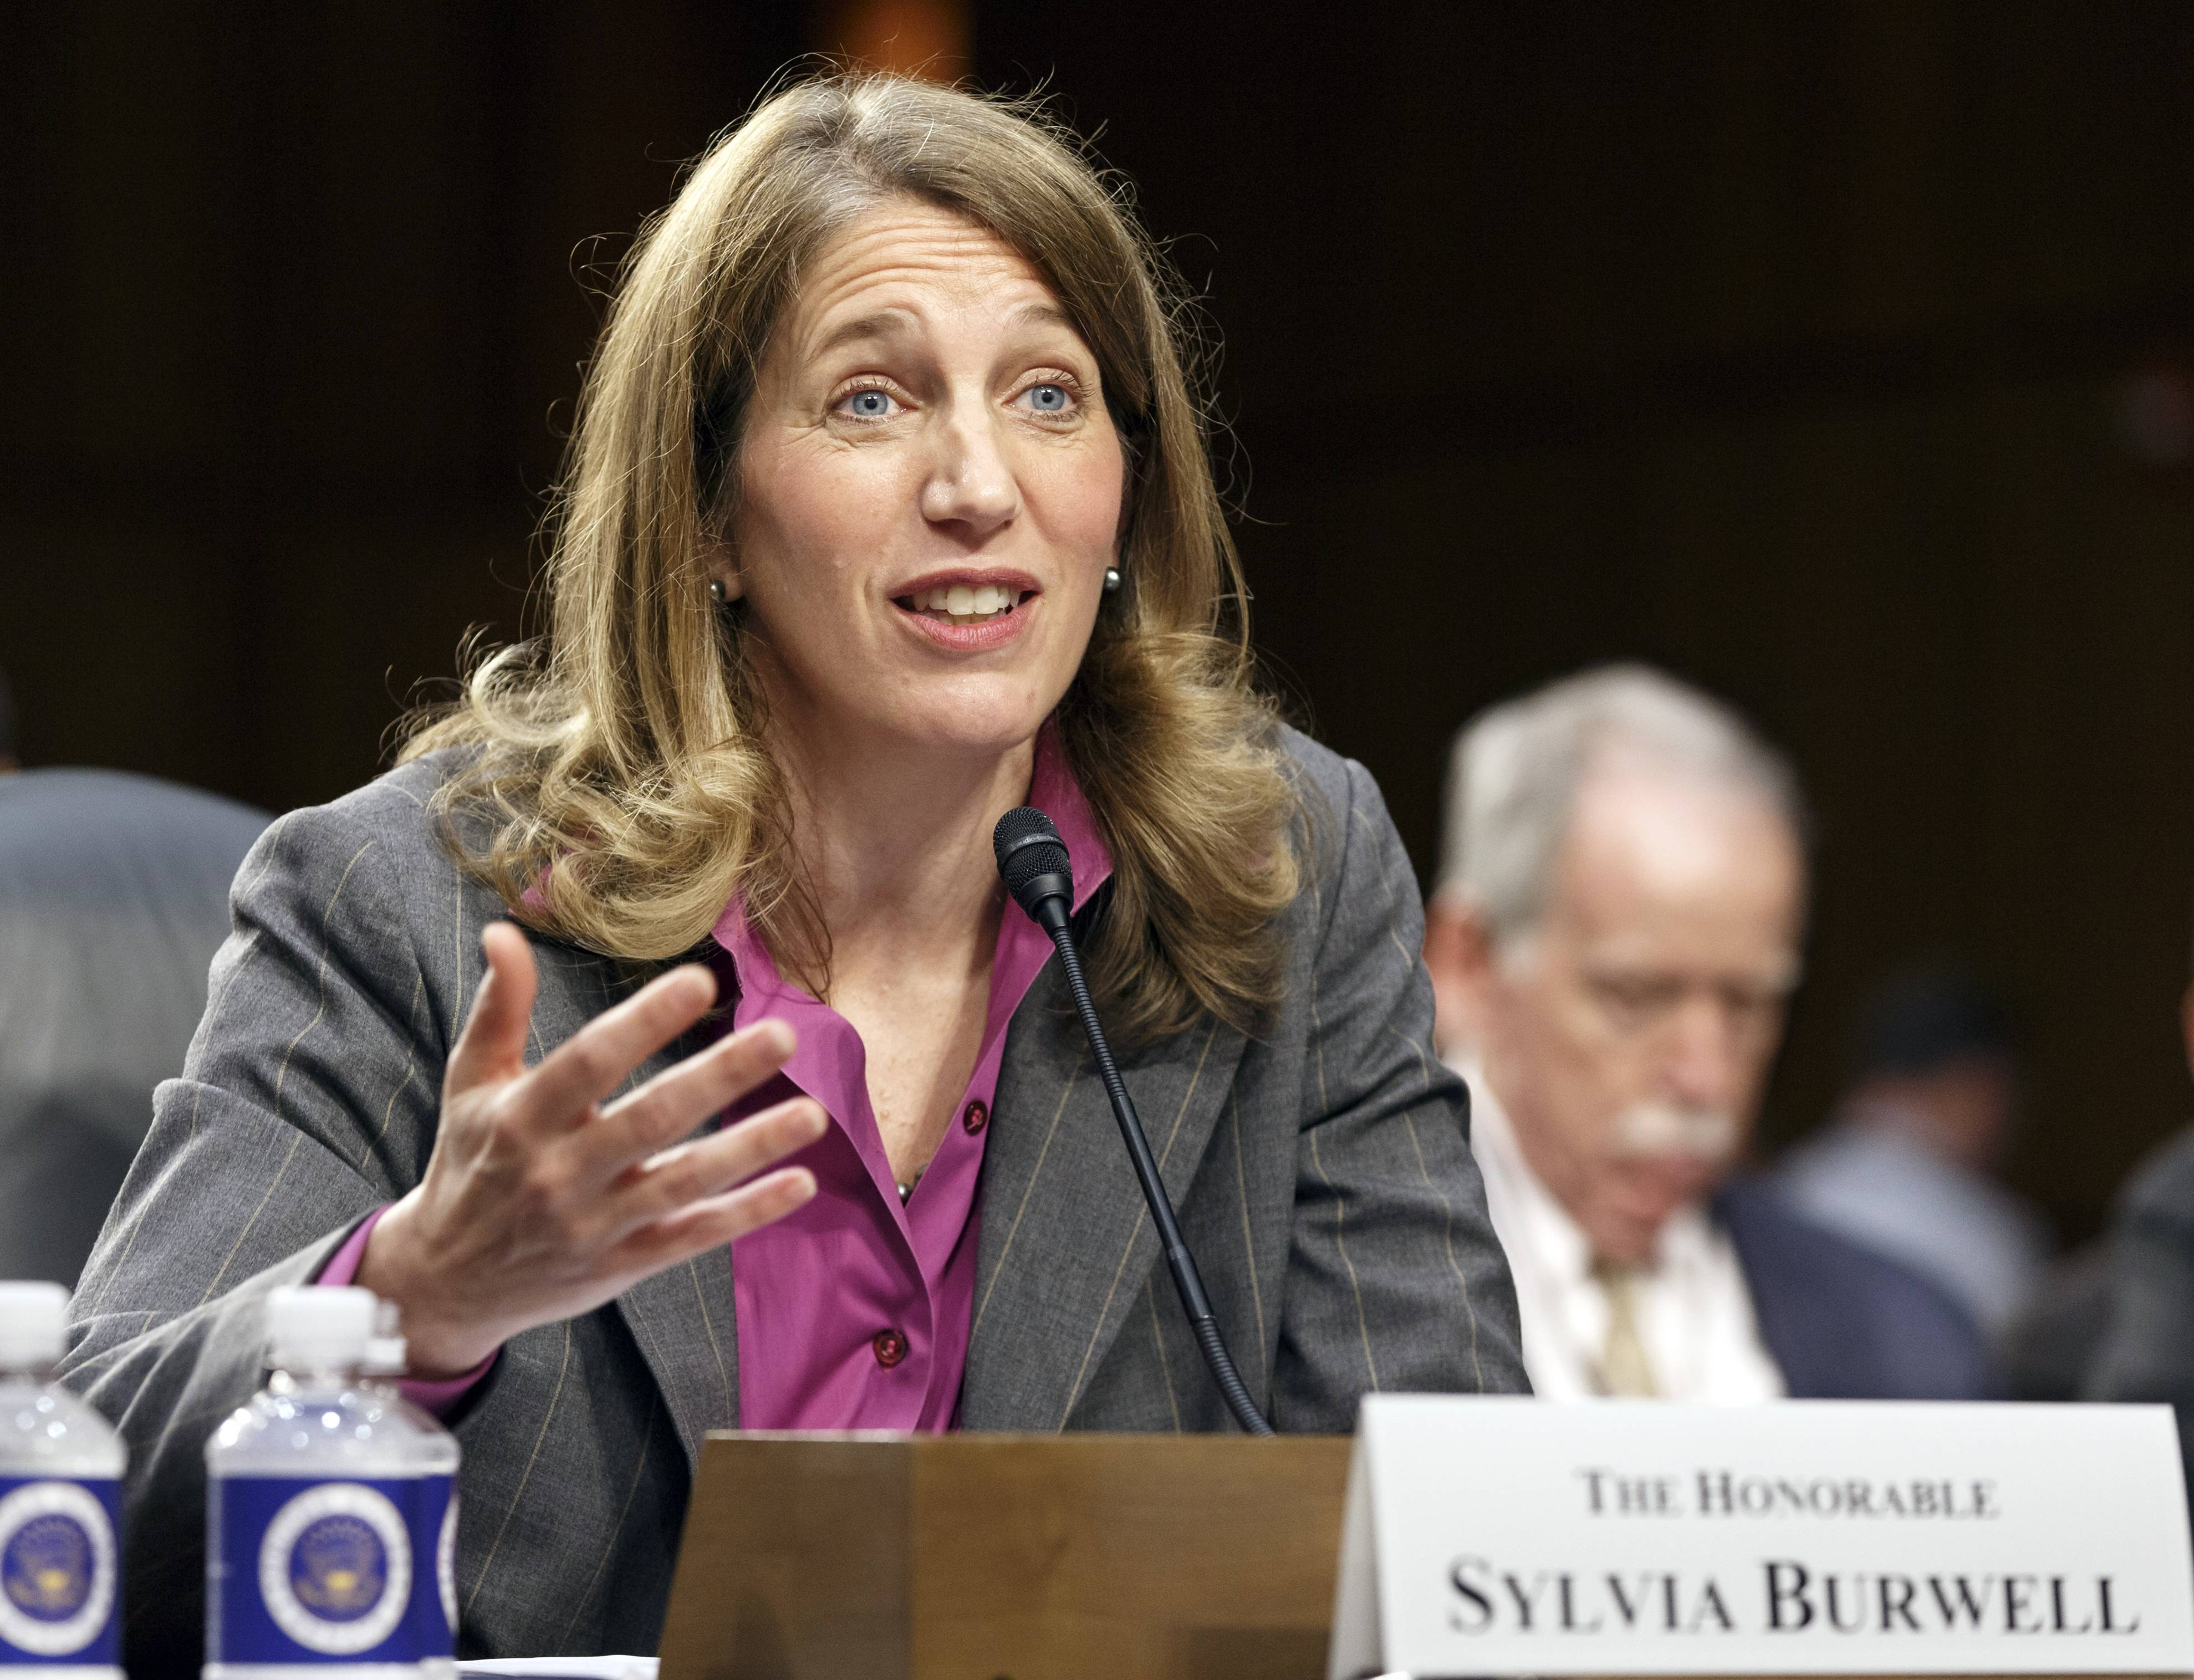 Sylvia Mathews Burwell, President Barack Obama's nominee to become secretary of Health and Human Services, is seen testifying on Capitol Hill in Washington last month. On Wednesday, Burwell easily passed a key test vote in the Senate.